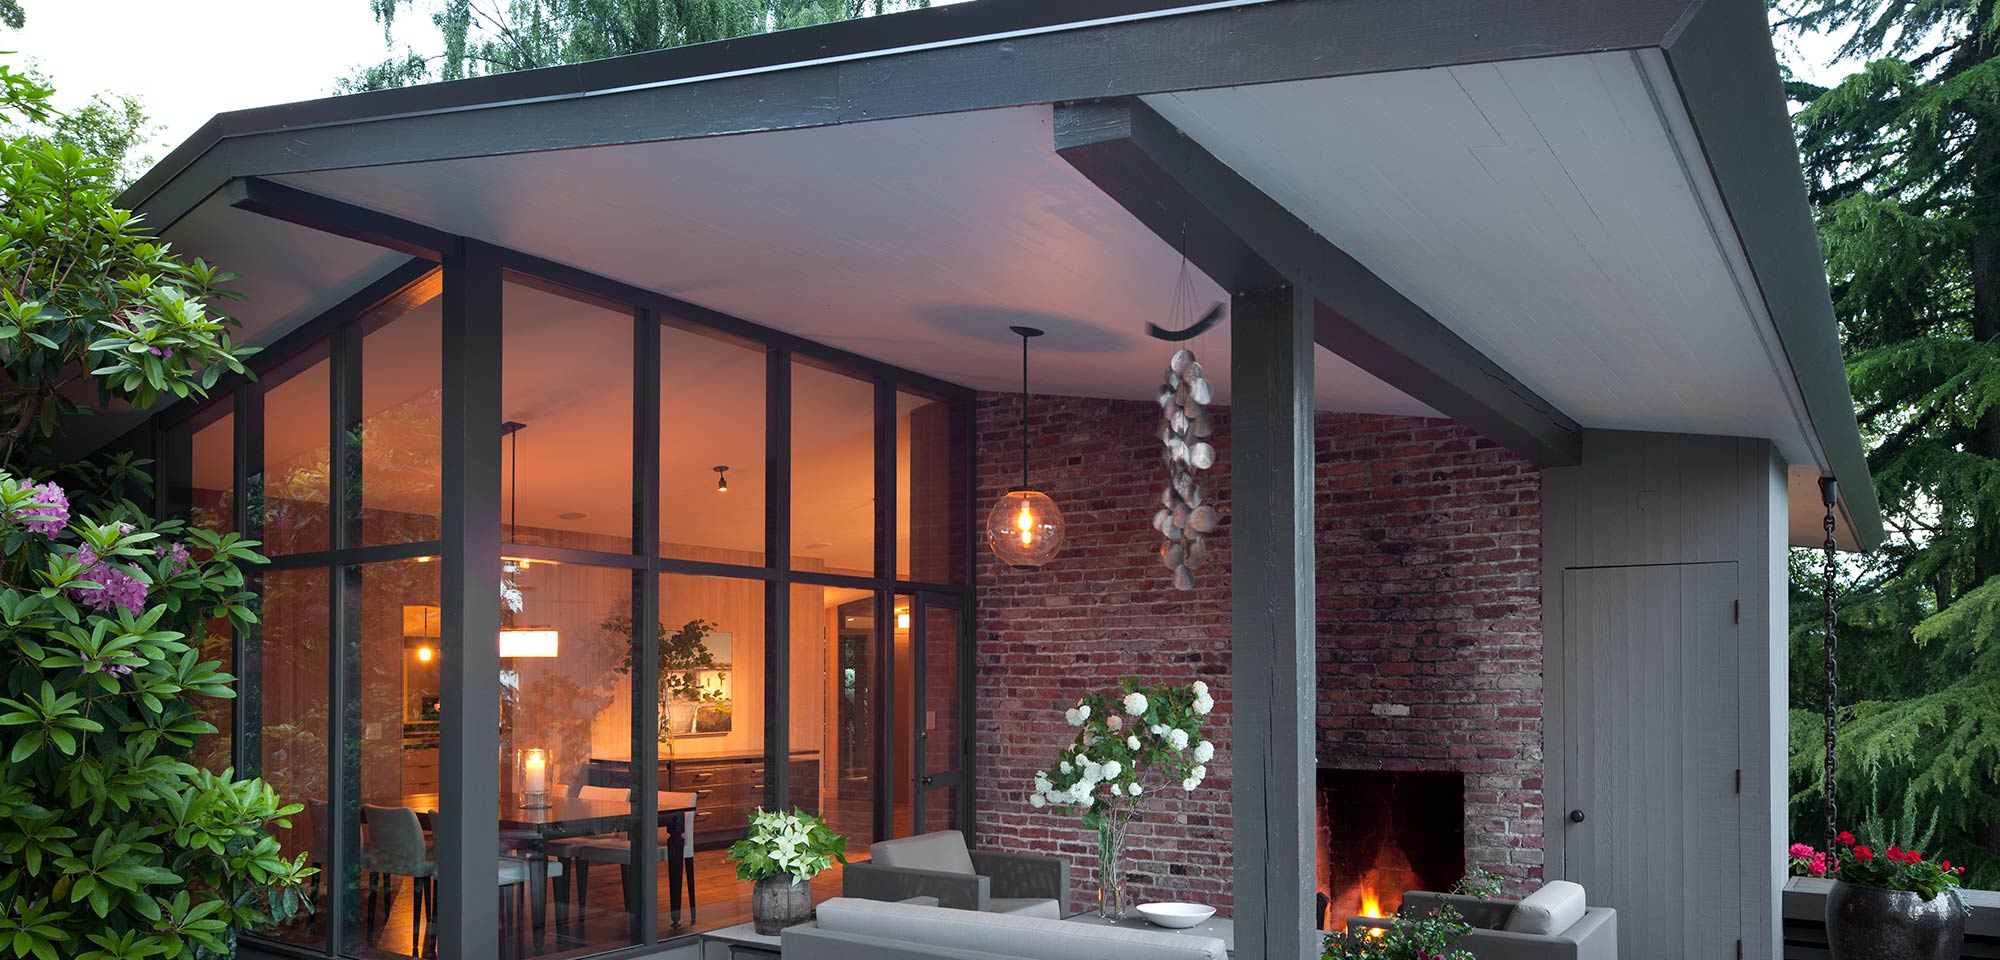 Roland Terry Remodel designed by Bosworth Hoedemaker